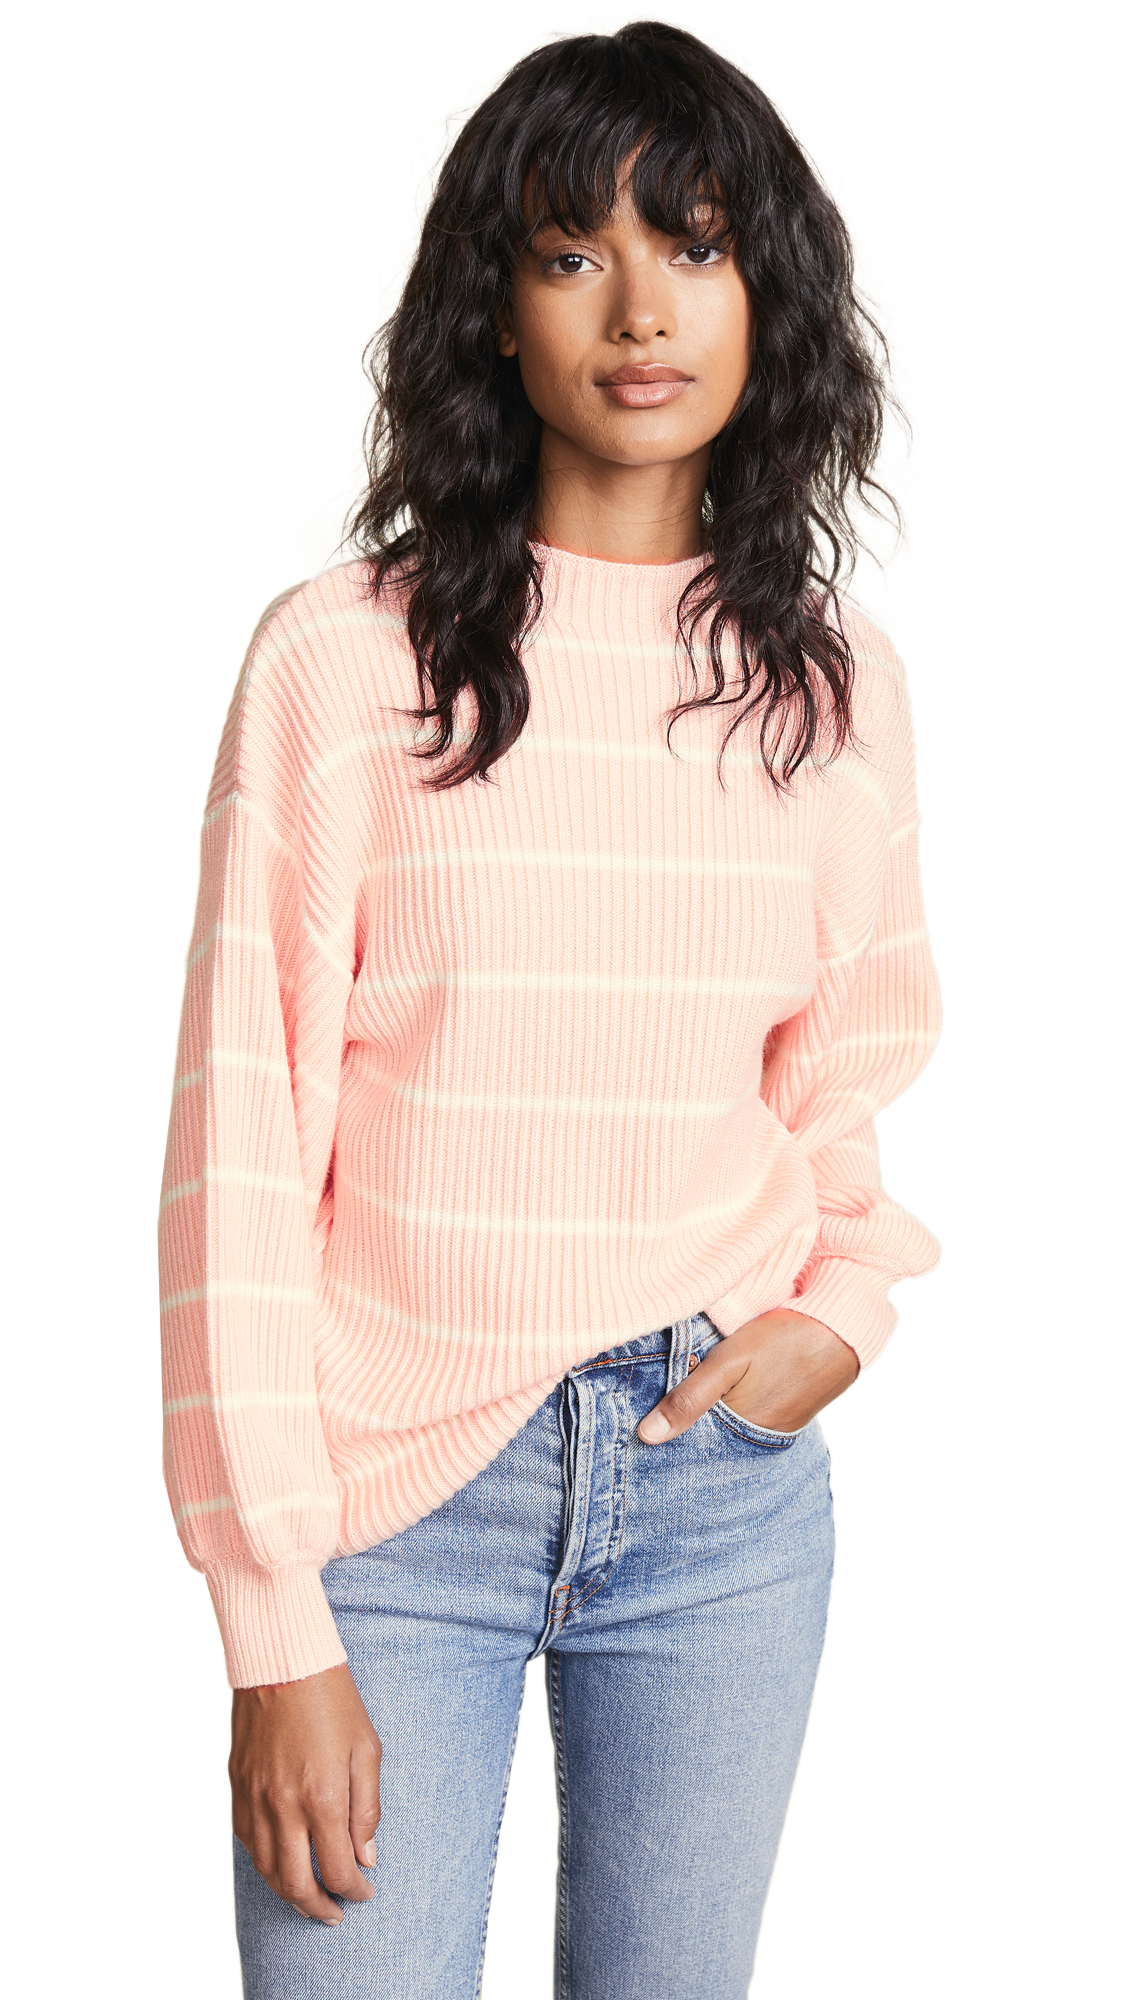 Saylor Bette Sweater In Ivory/Pink